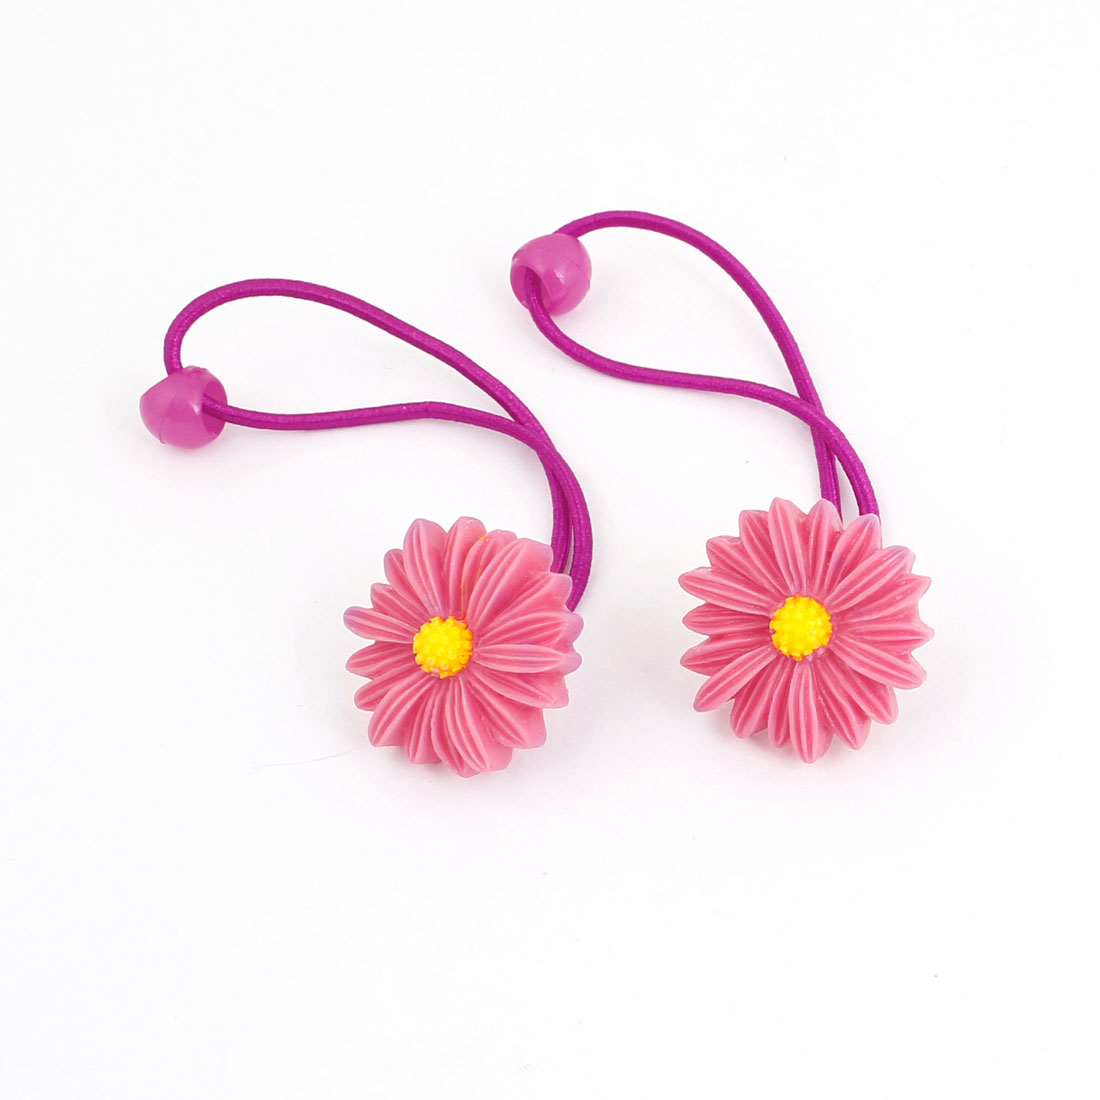 2pcs Watermelon Red Plastic Flower Daisy Accent Hair Tie Ponytail Braid Holder